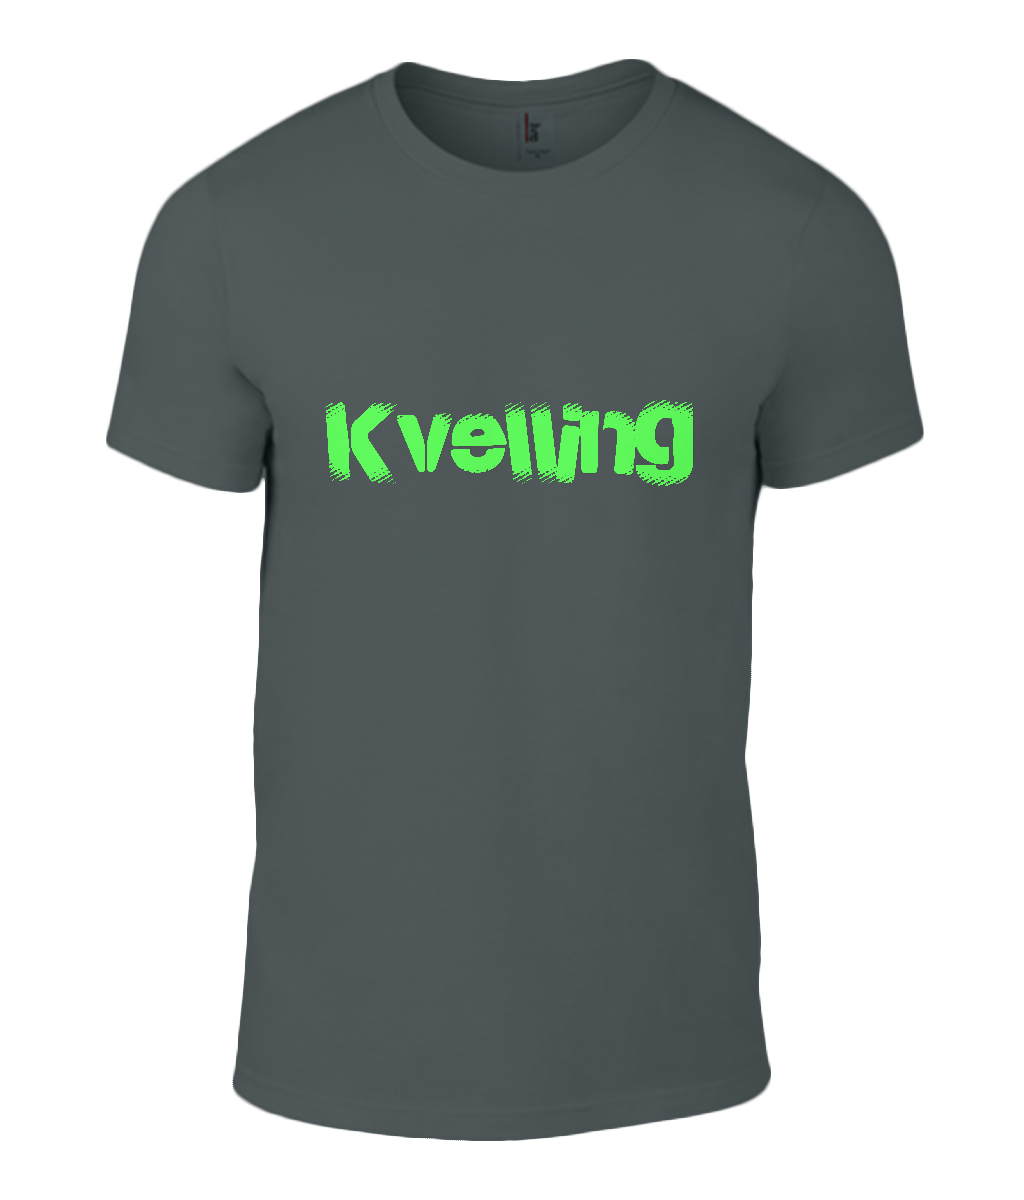 Round Neck T-Shirt - Kvelling